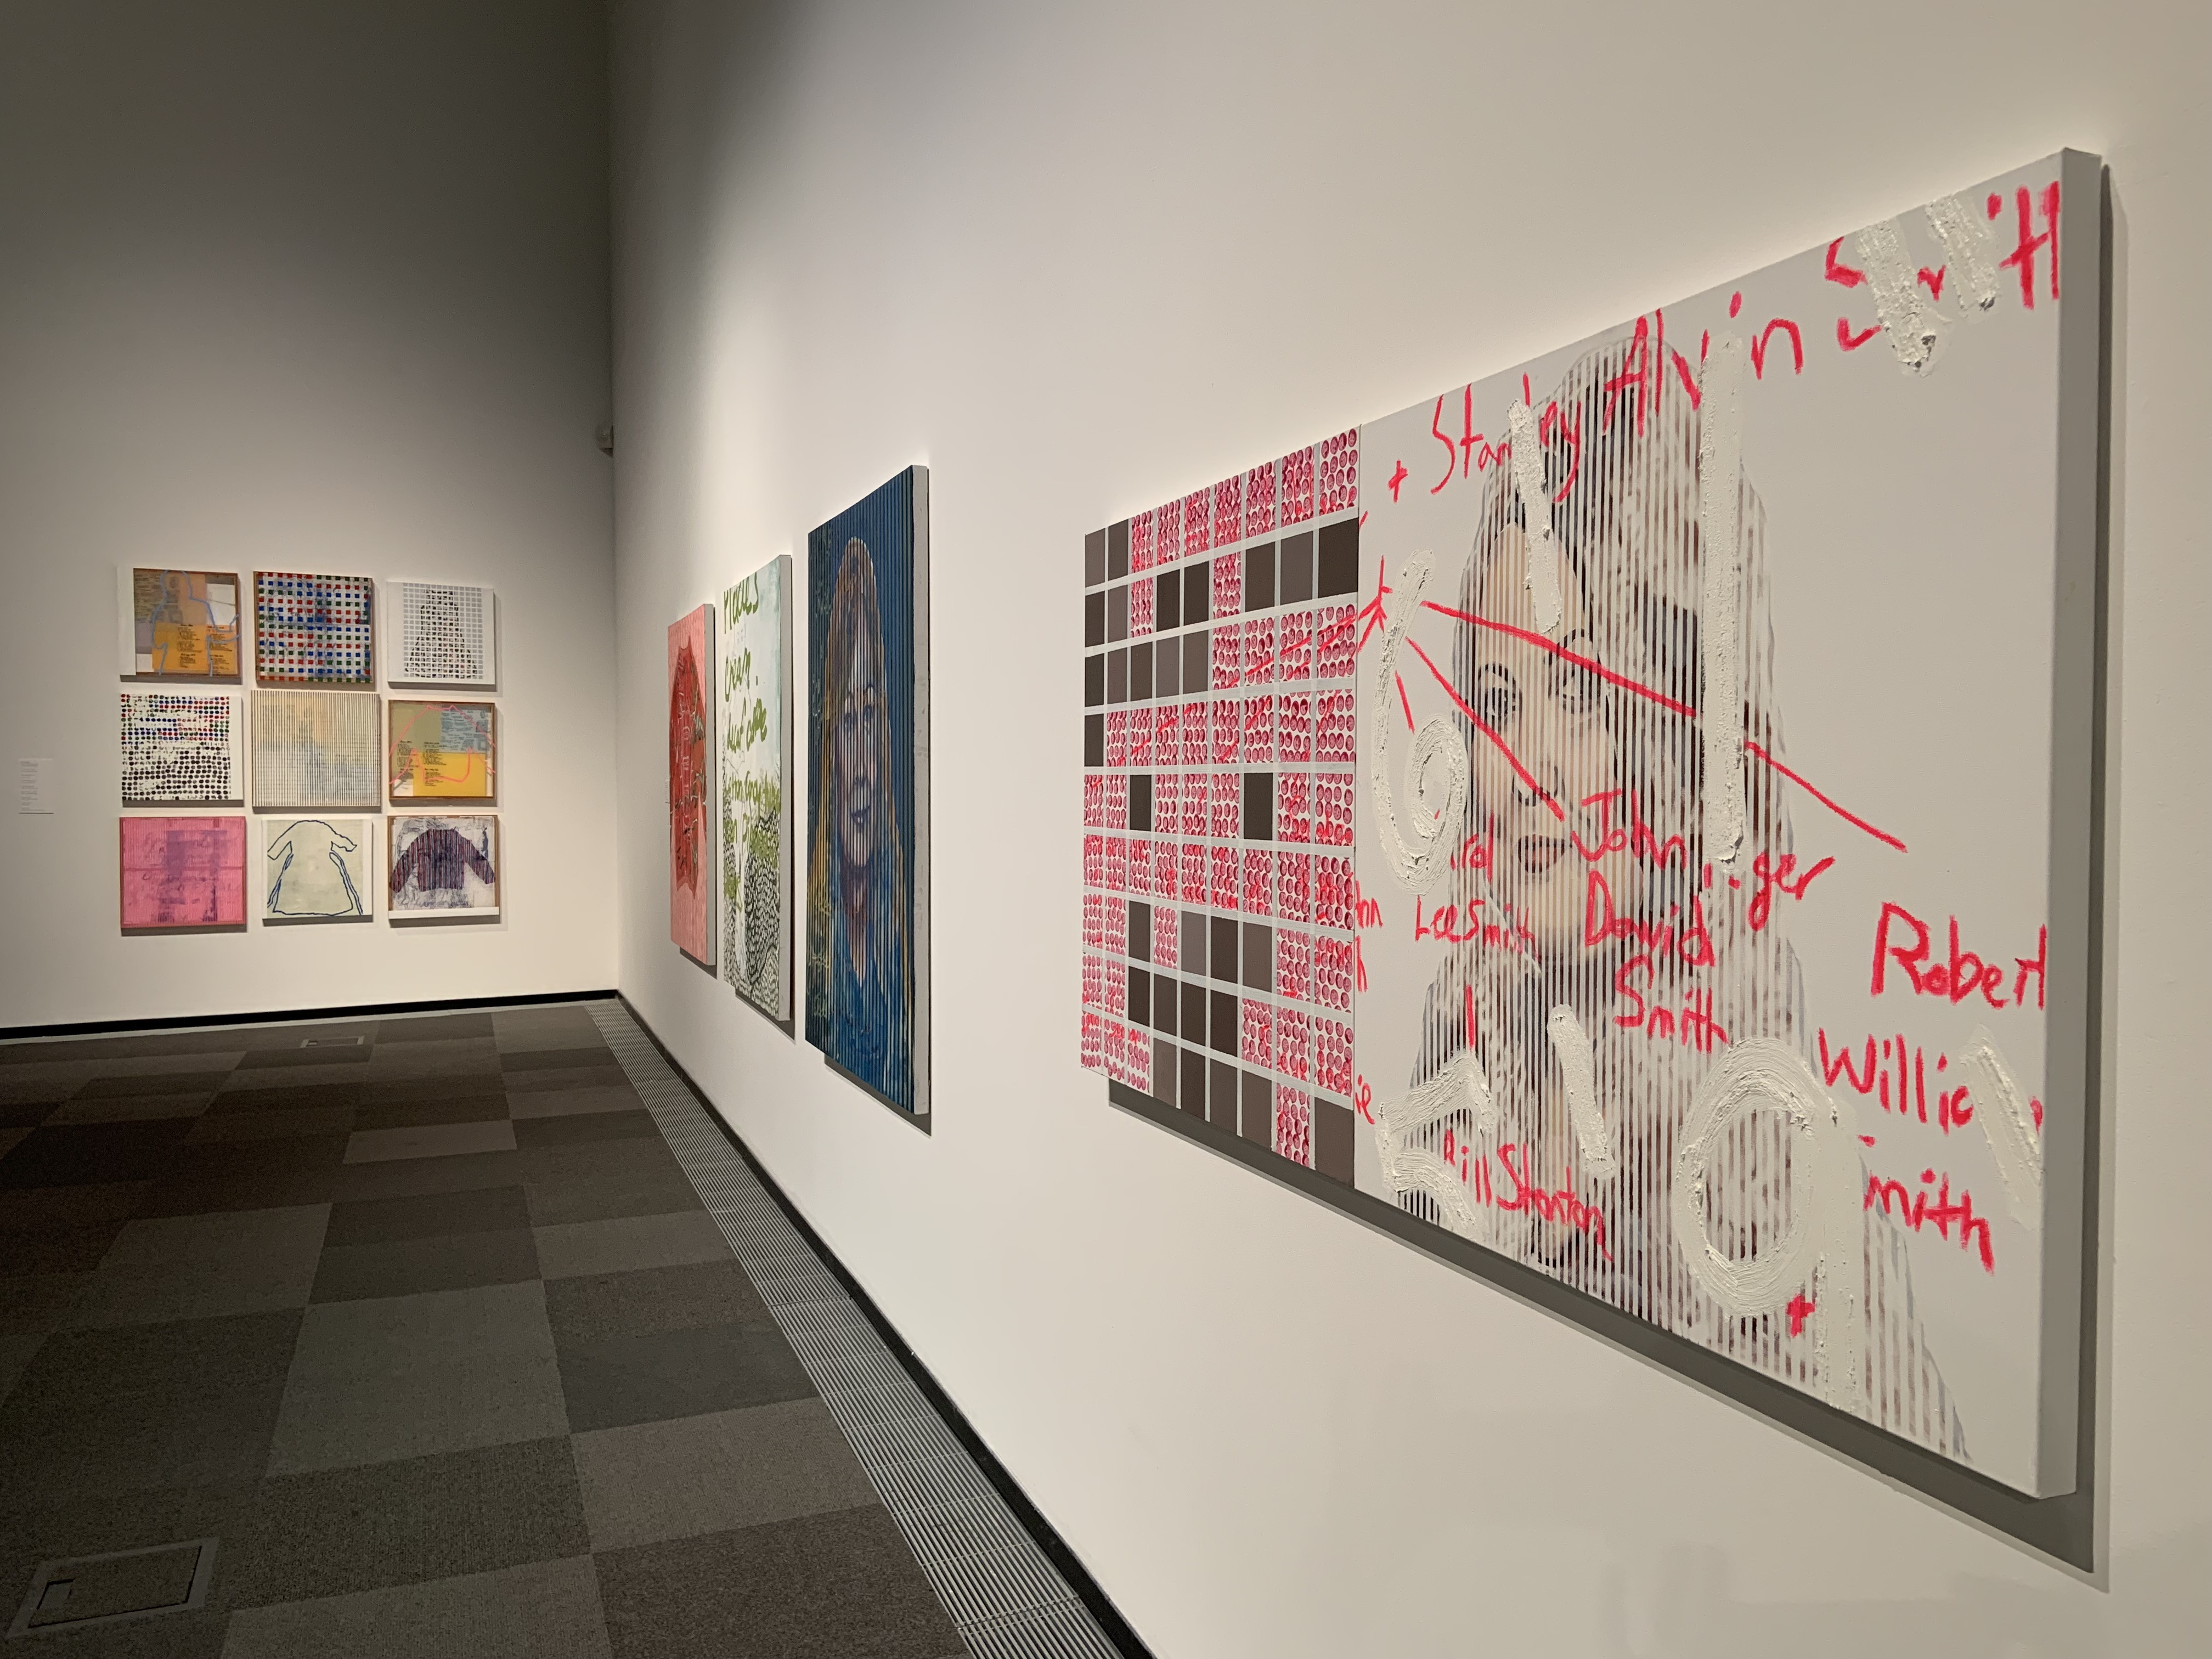 Samantha Charette: The Gaps and Silences are Where You Find Yourself (installation view)